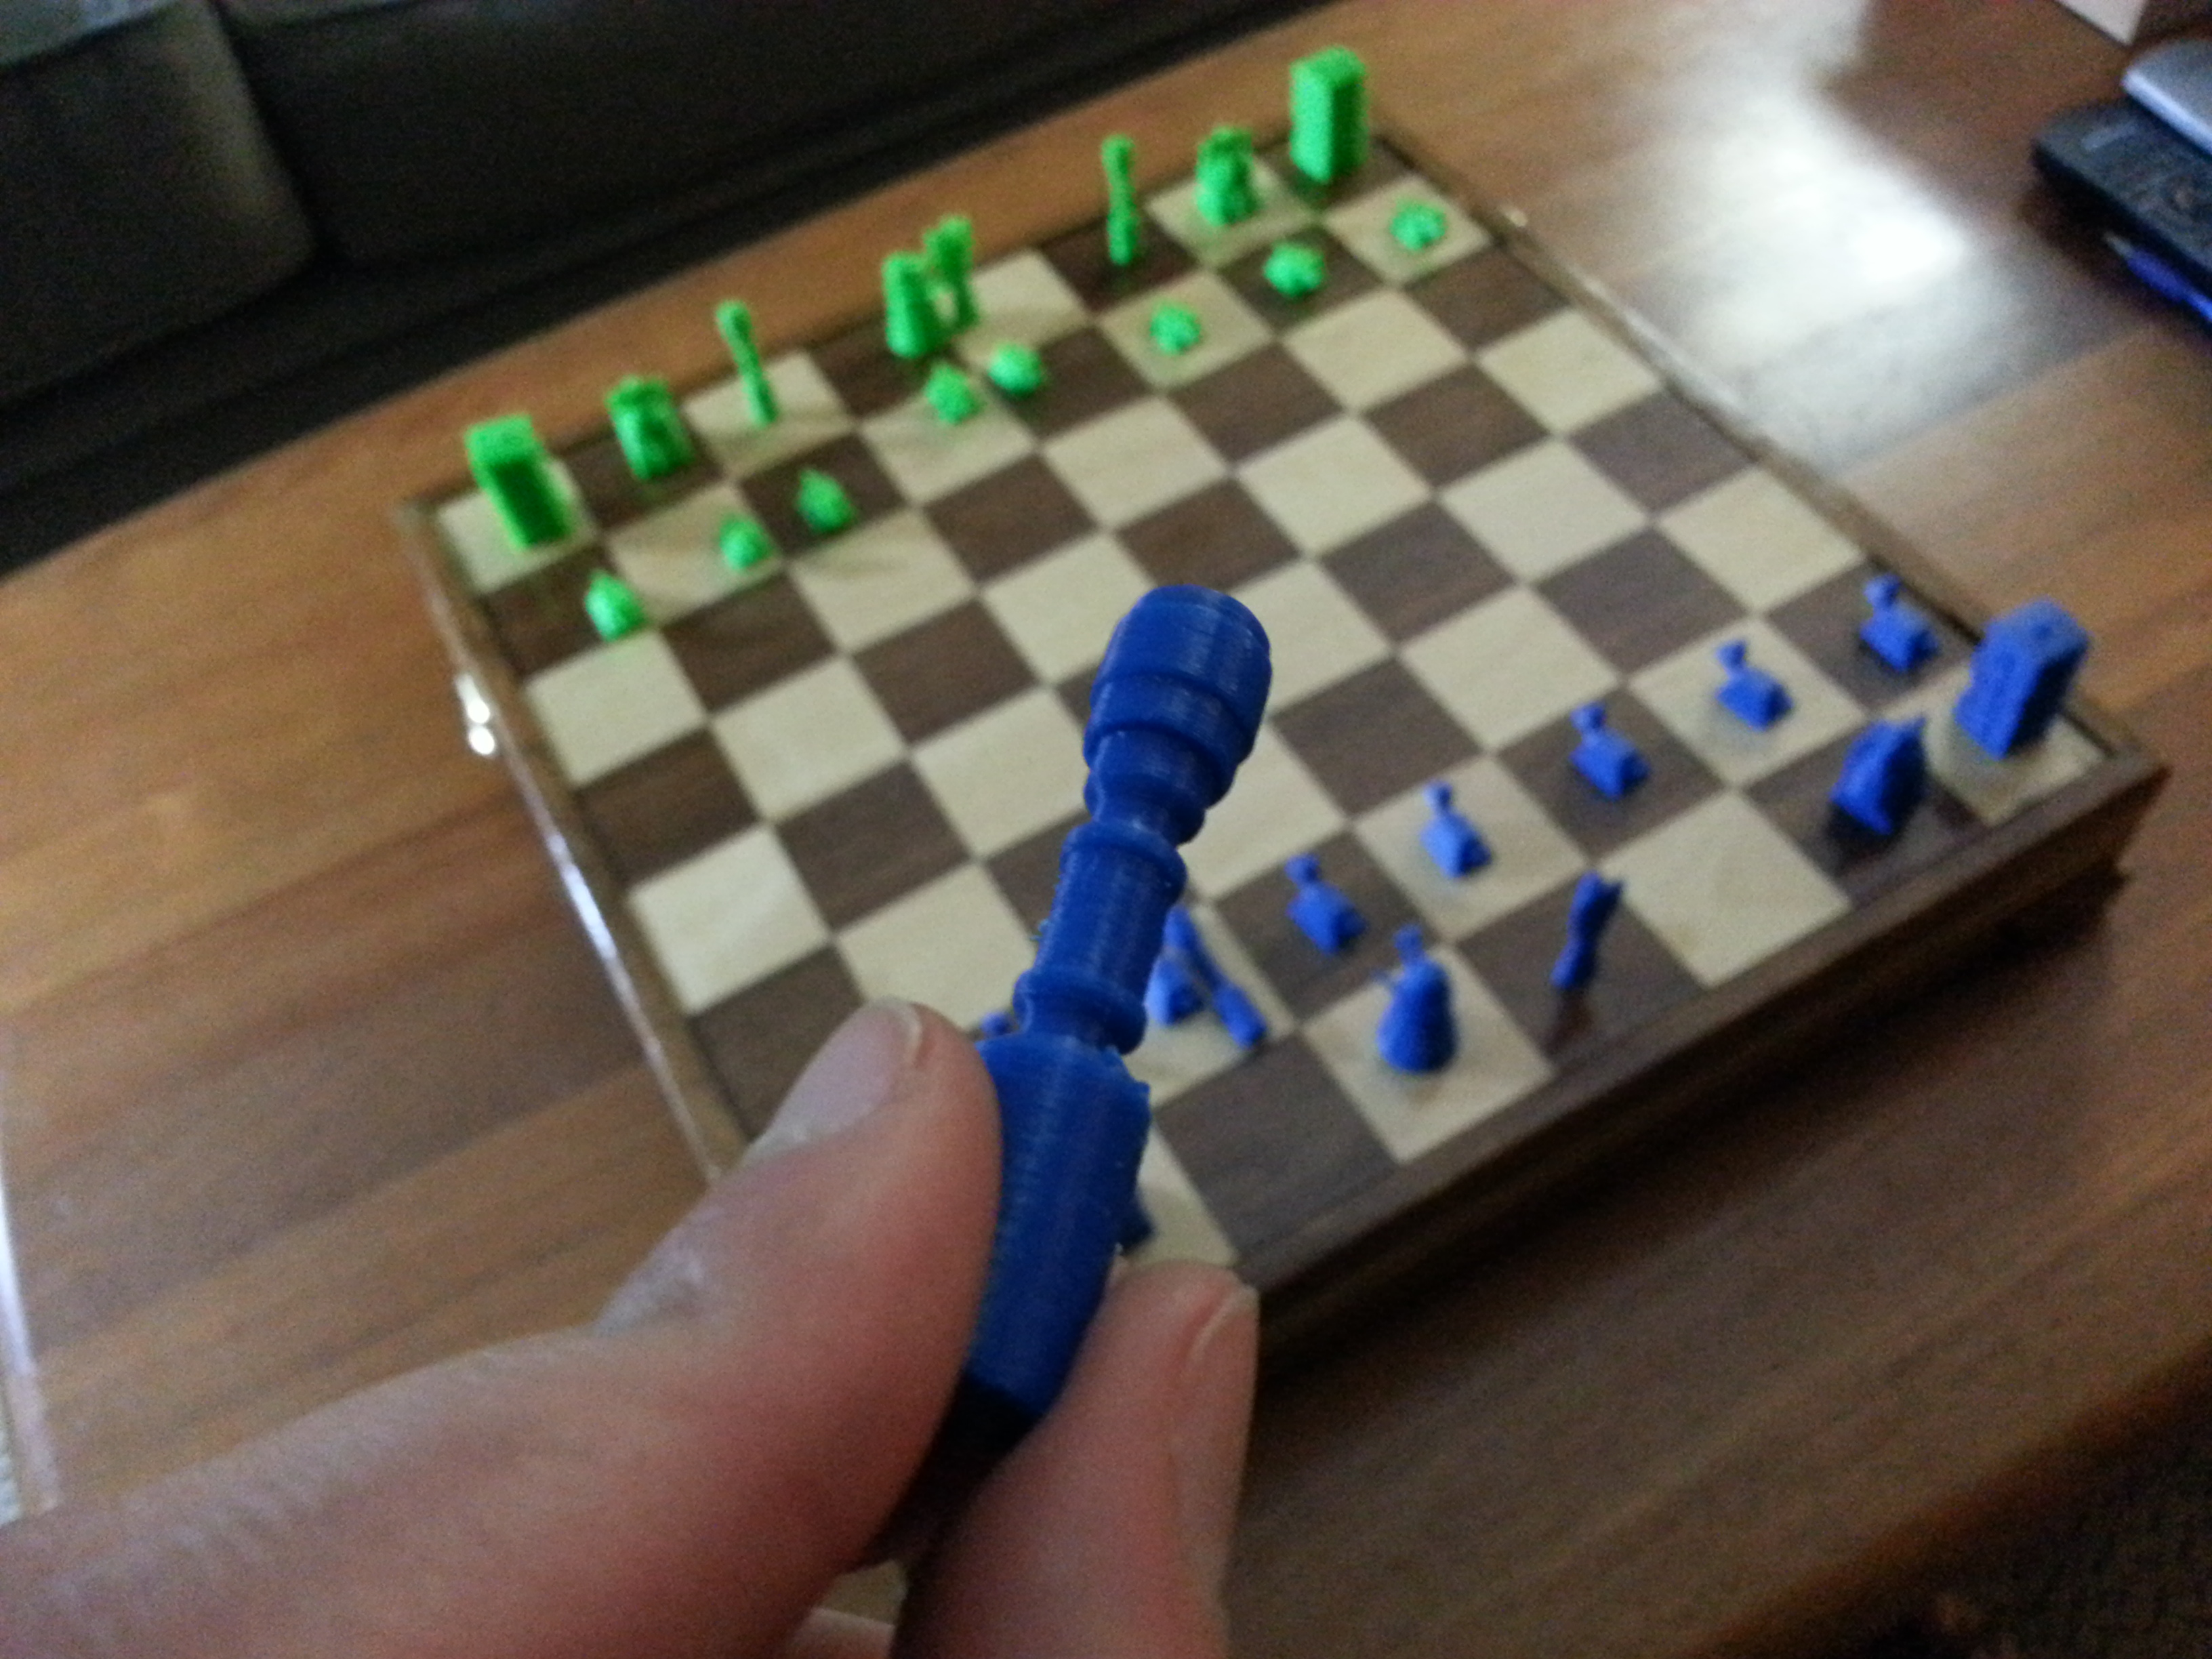 trying to use a sonic screwdriver on wooden chessboard doesn't work